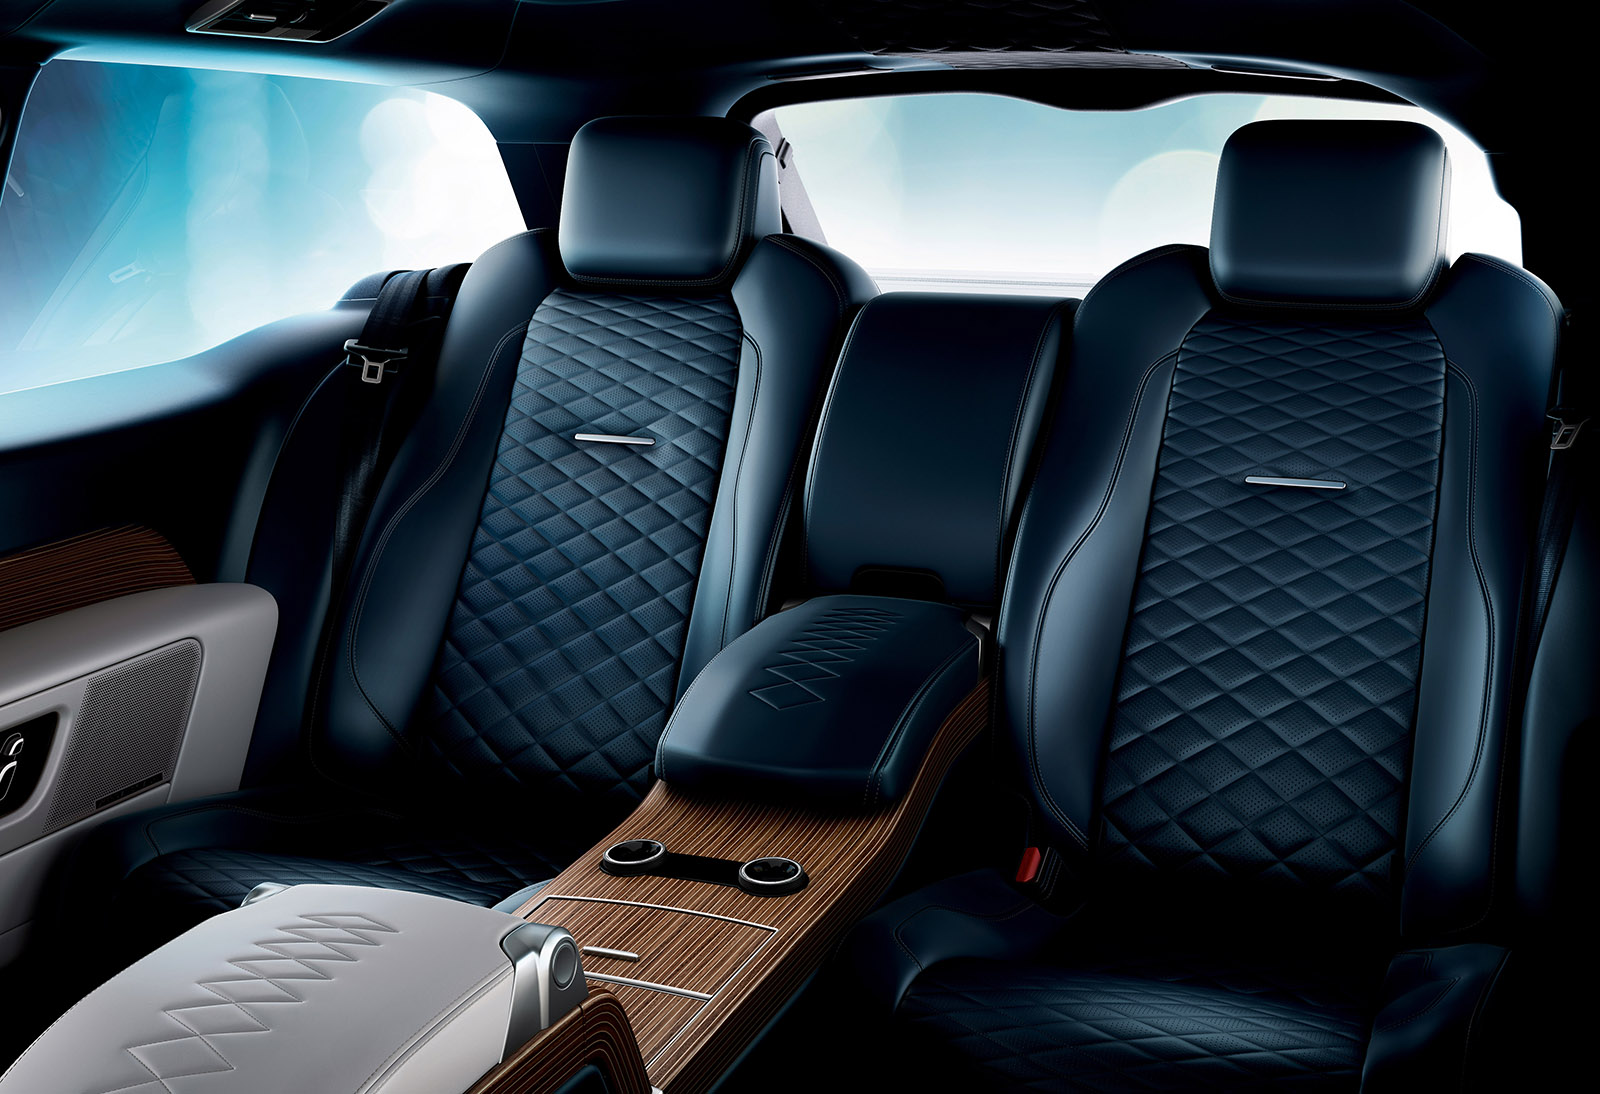 Range Rover SV Coupe is full-size luxury